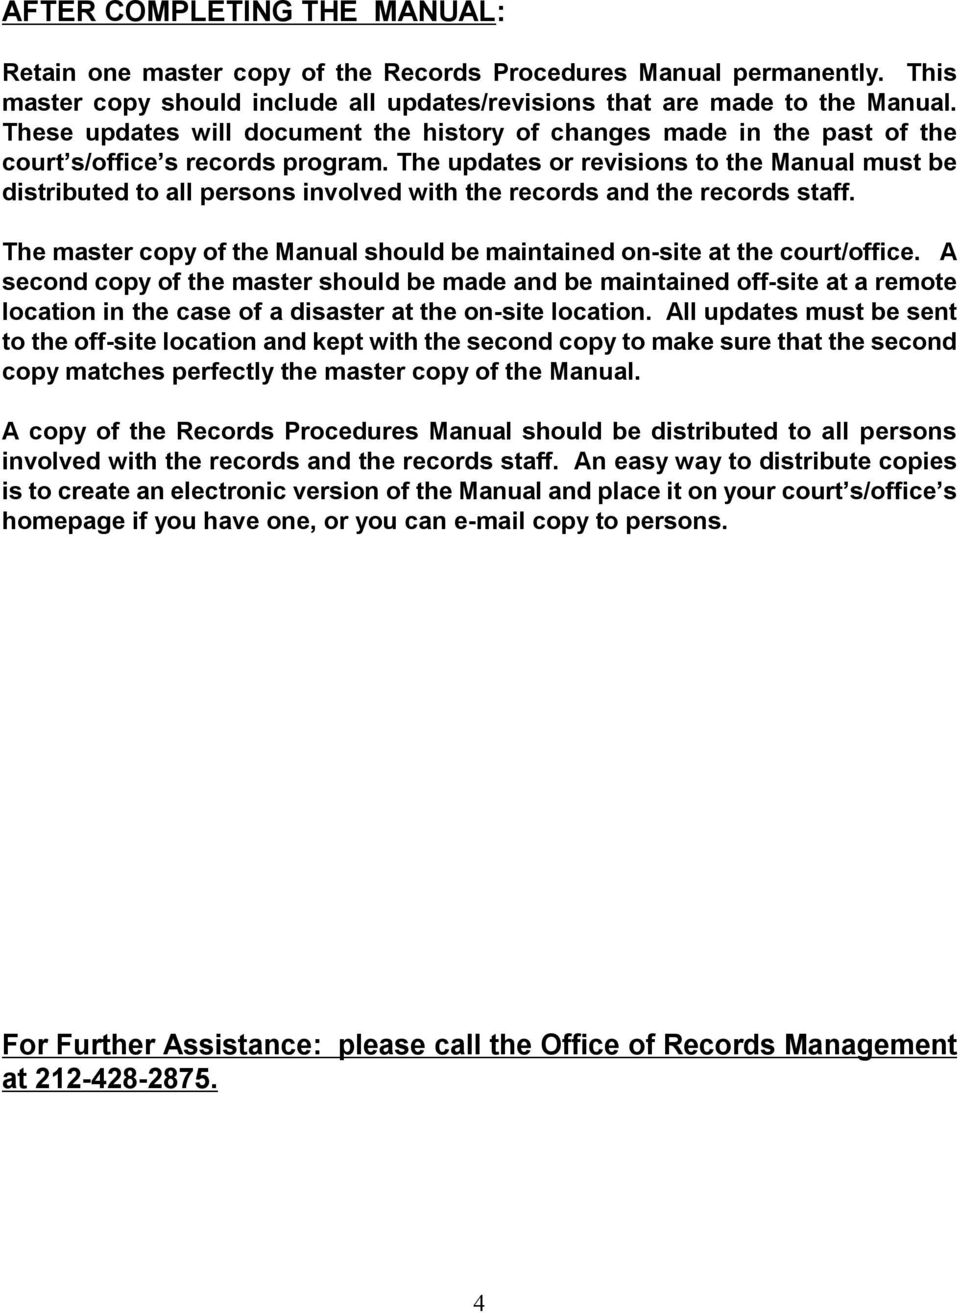 The updates or revisions to the Manual must be distributed to all persons involved with the records and the records staff.